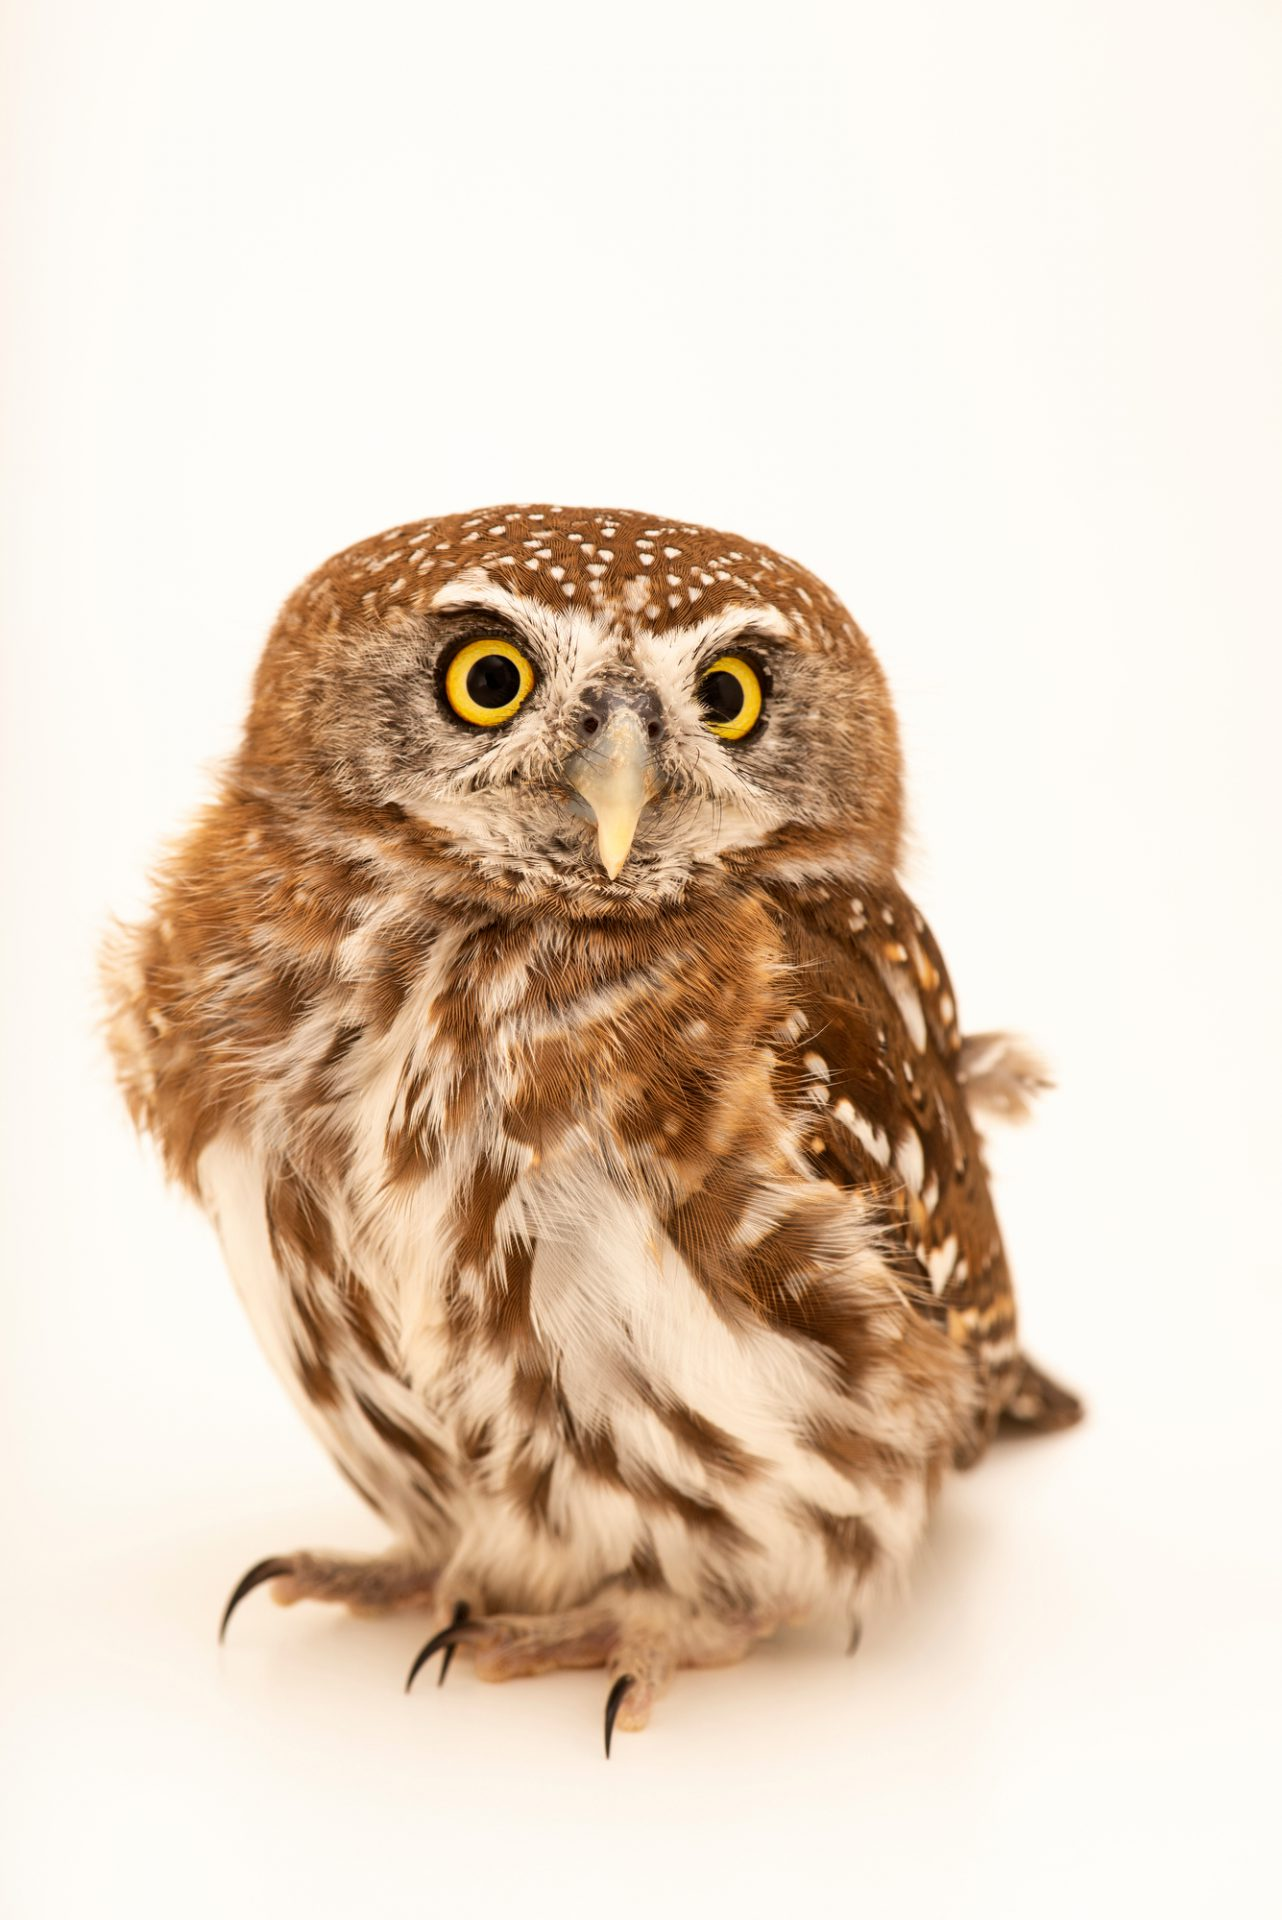 Photo: Pearl-spotted owlet (Glaucidium perlatum) at Monticello Center in Italy.